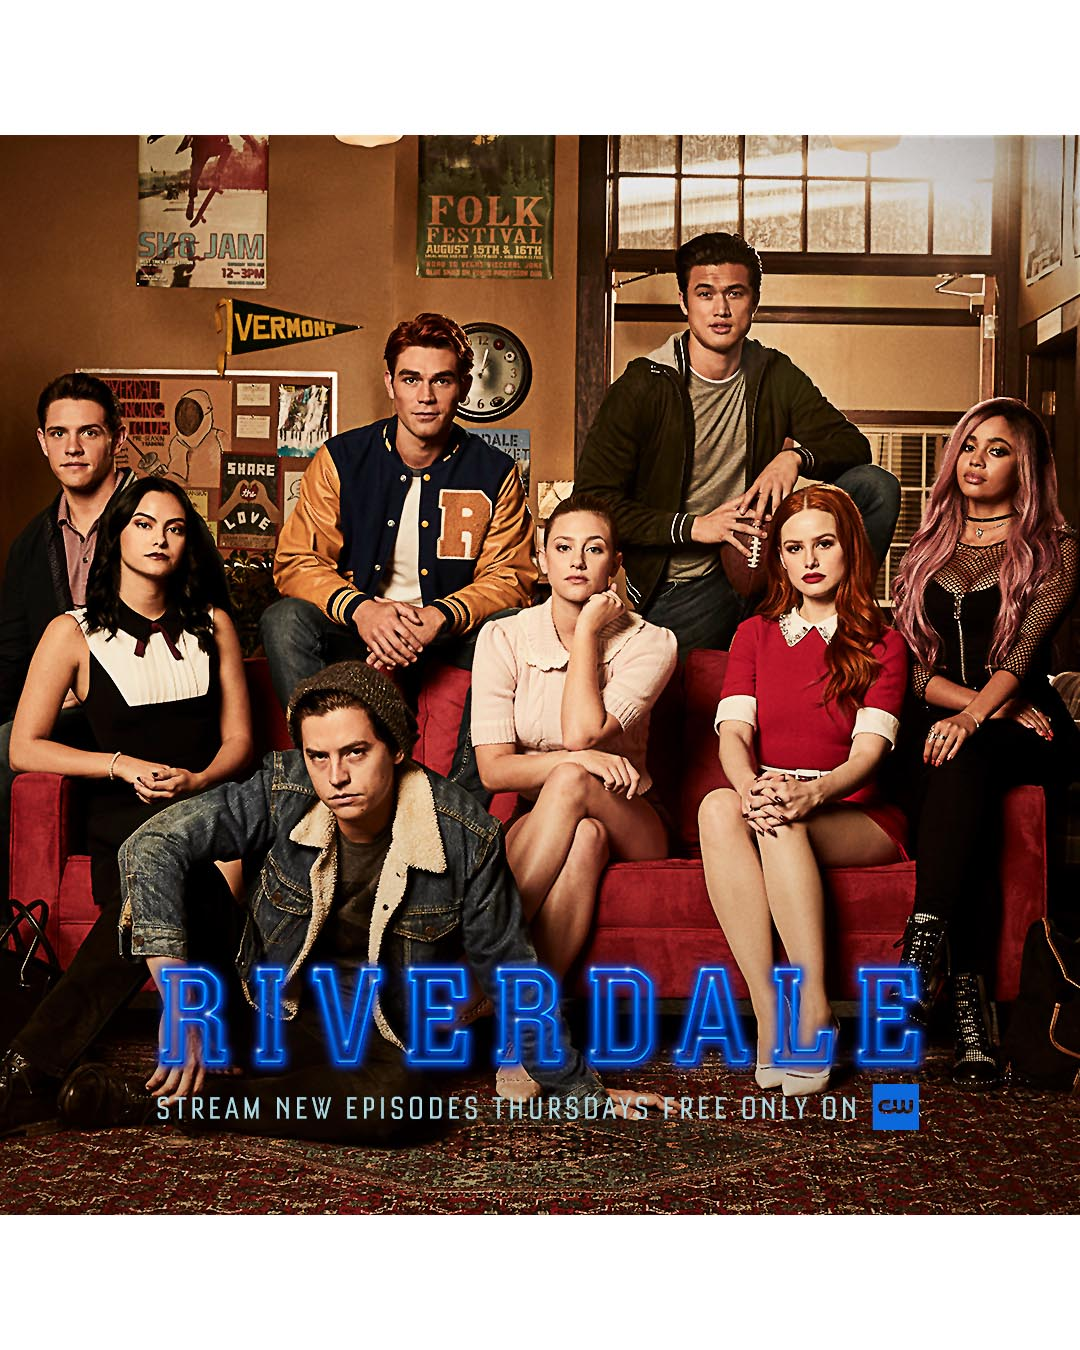 CW_Riverdale_13group2.JPG